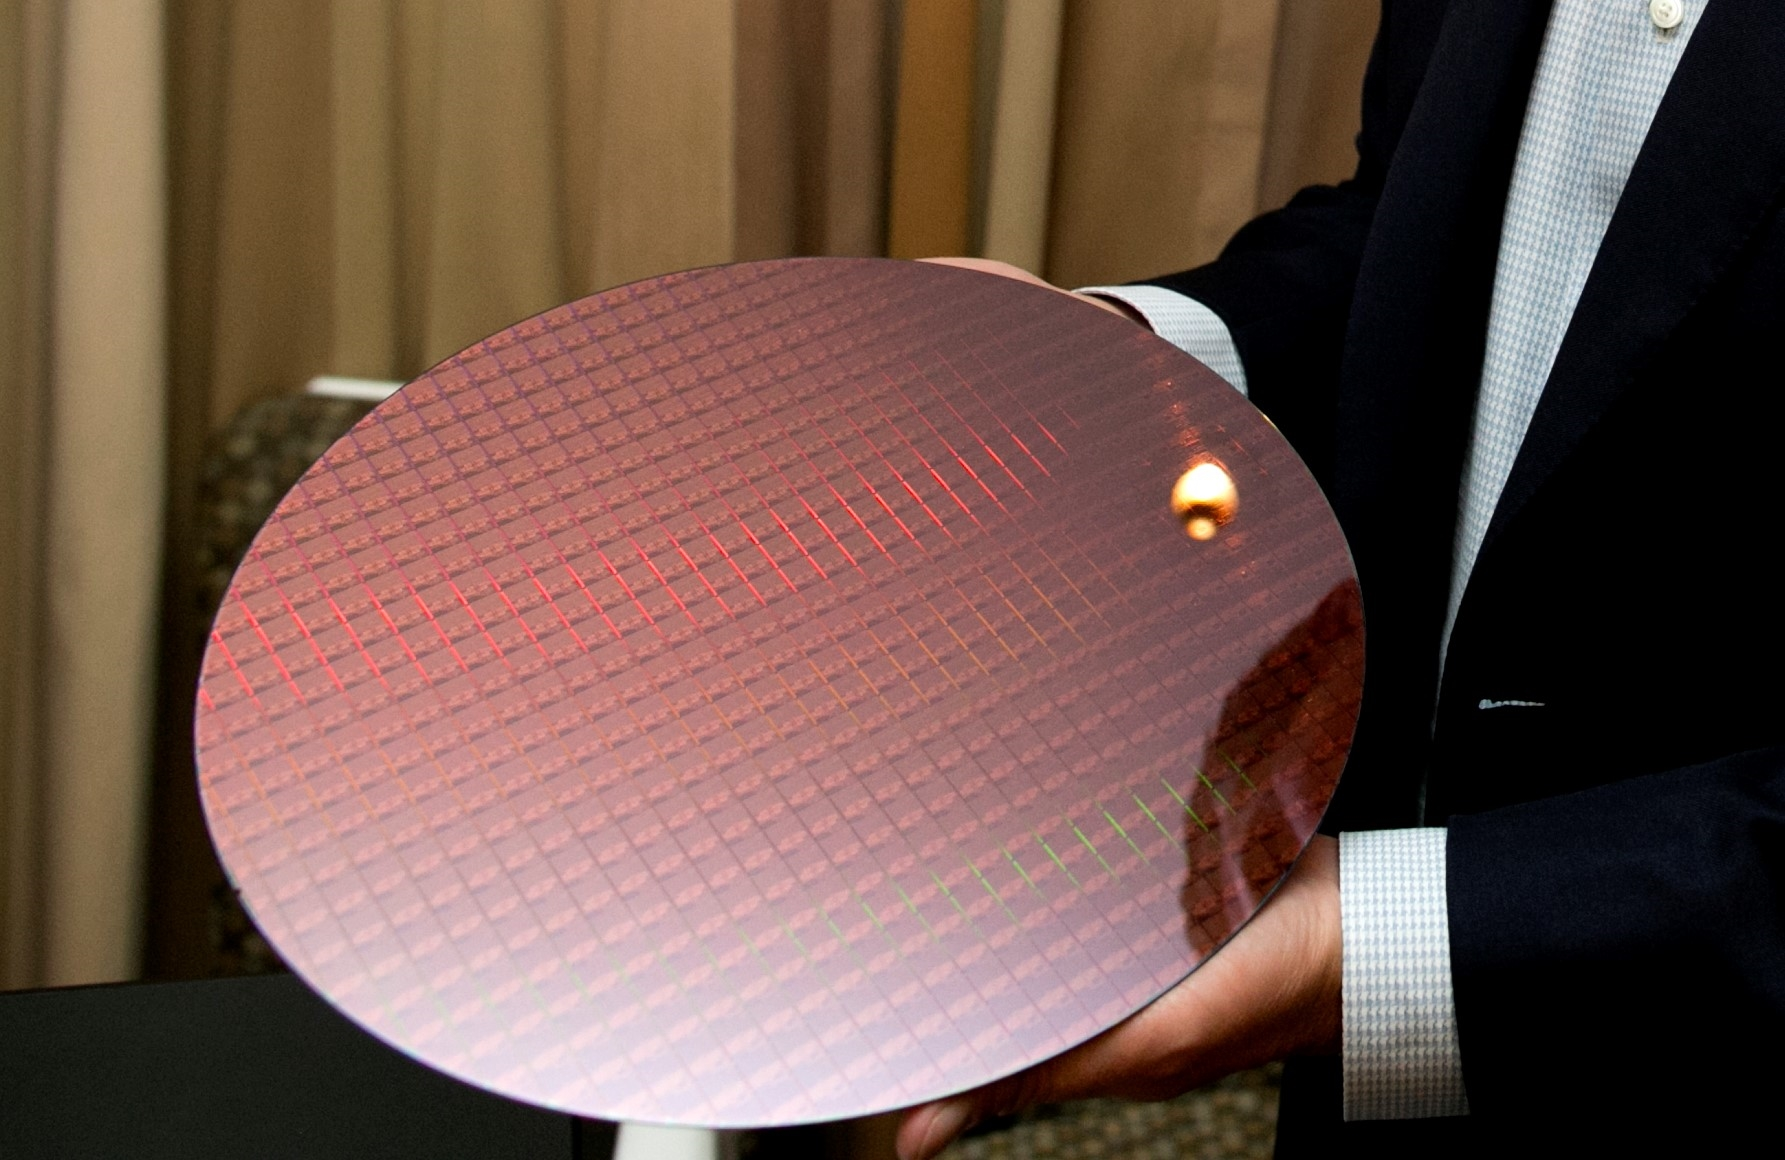 Intel Core I7 7700k Flagship Kaby Lake Cpu Listed Online Processor 7th Gen Processors Are Manufactured On Silicon Wafers At Production Facilities New